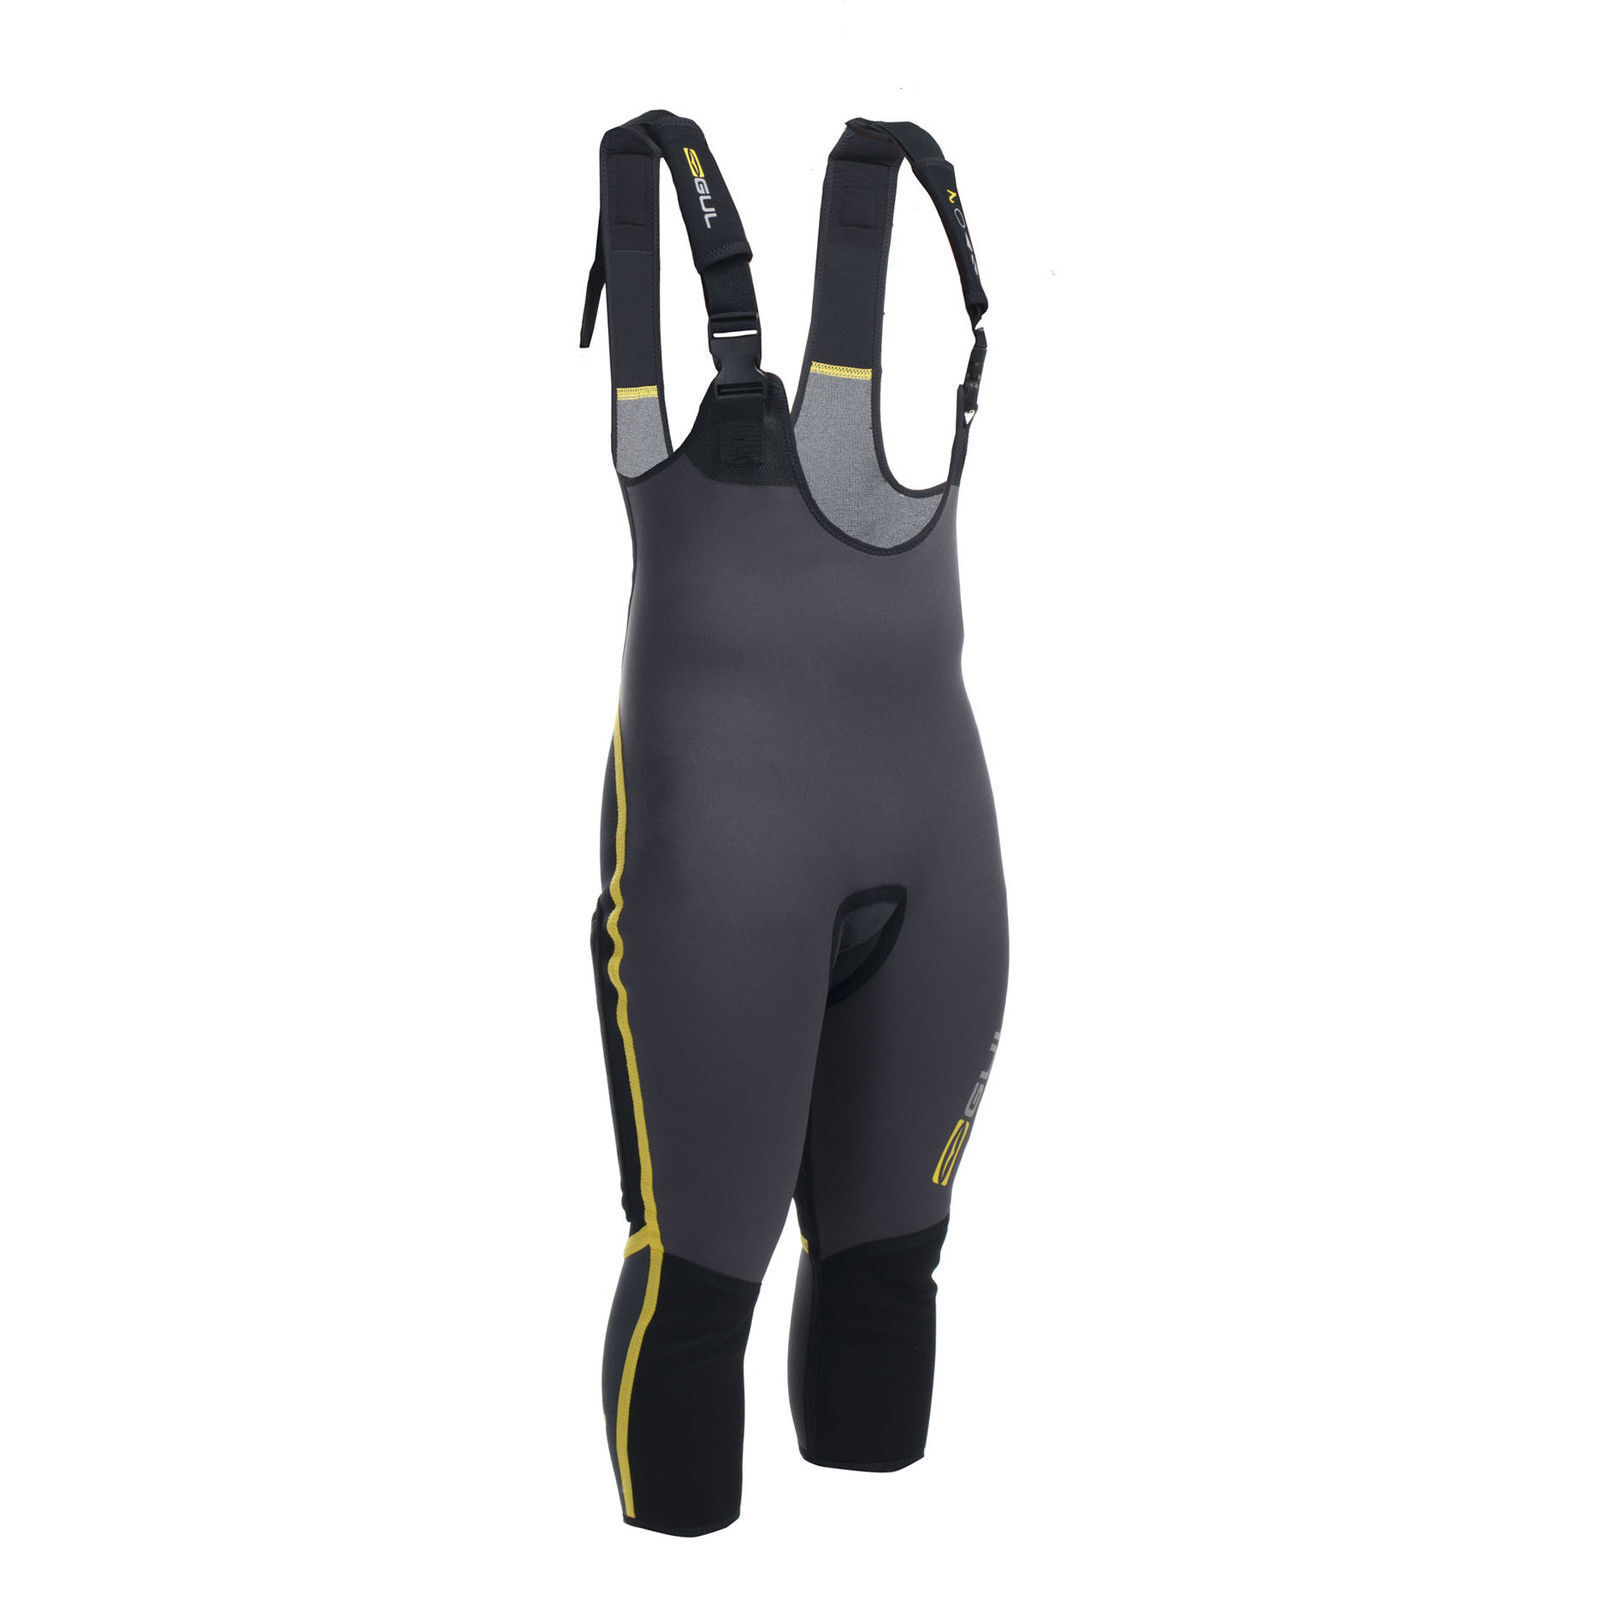 Gul 3 mm EVO2 Hikepants GM0376-A7 All Sizes Available, Sailing, Sail, Watersport